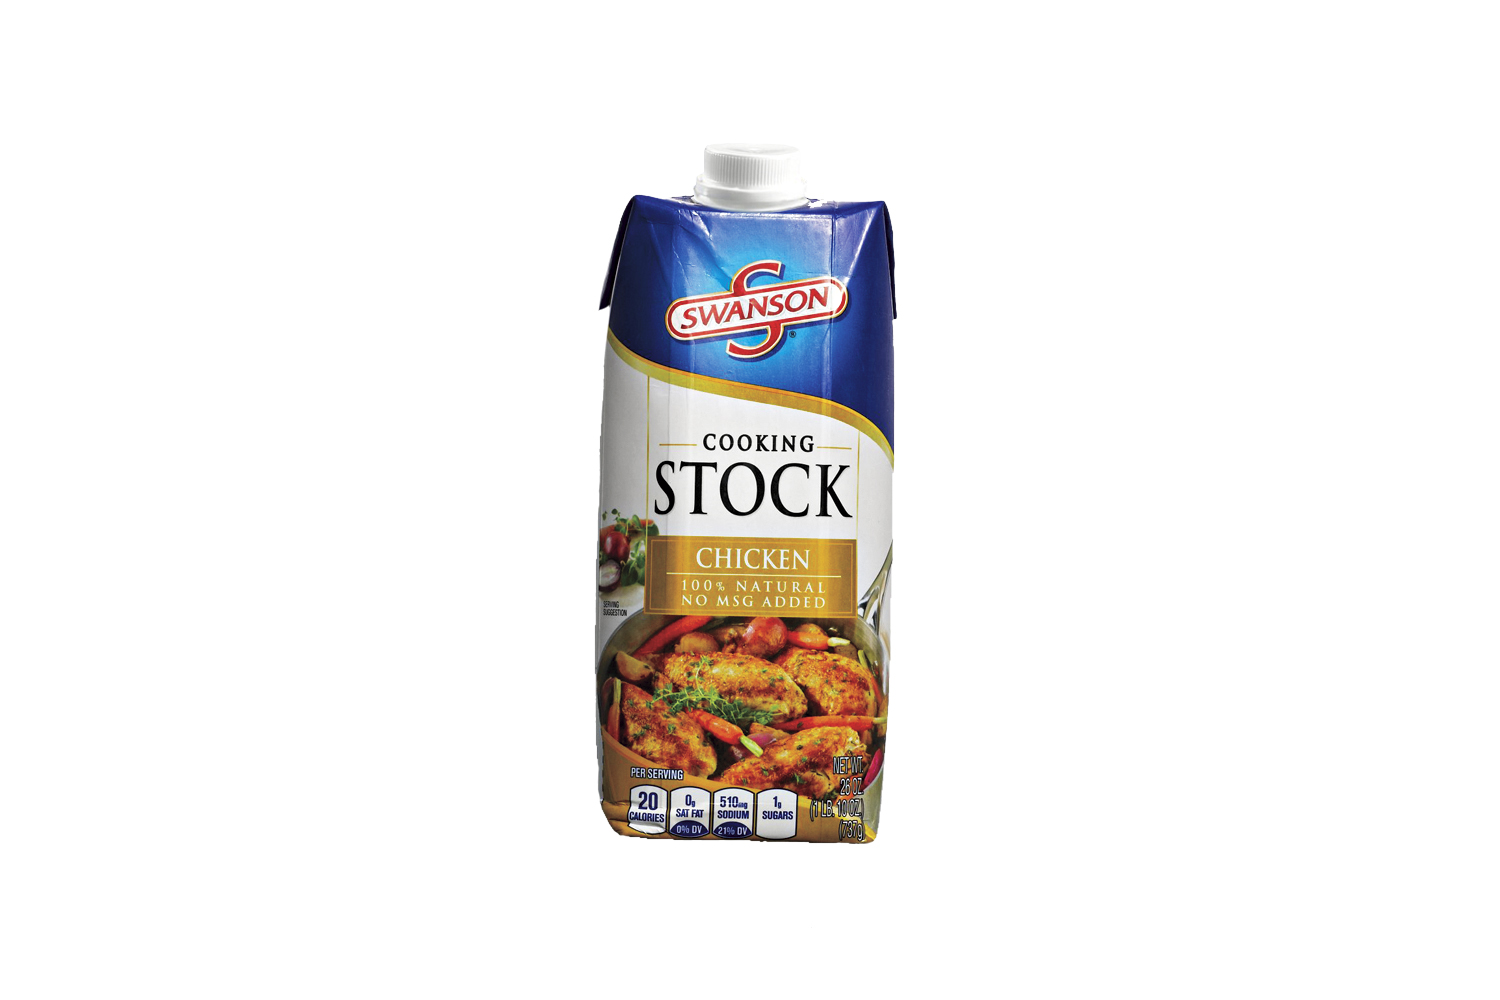 Swanson Chicken Stock